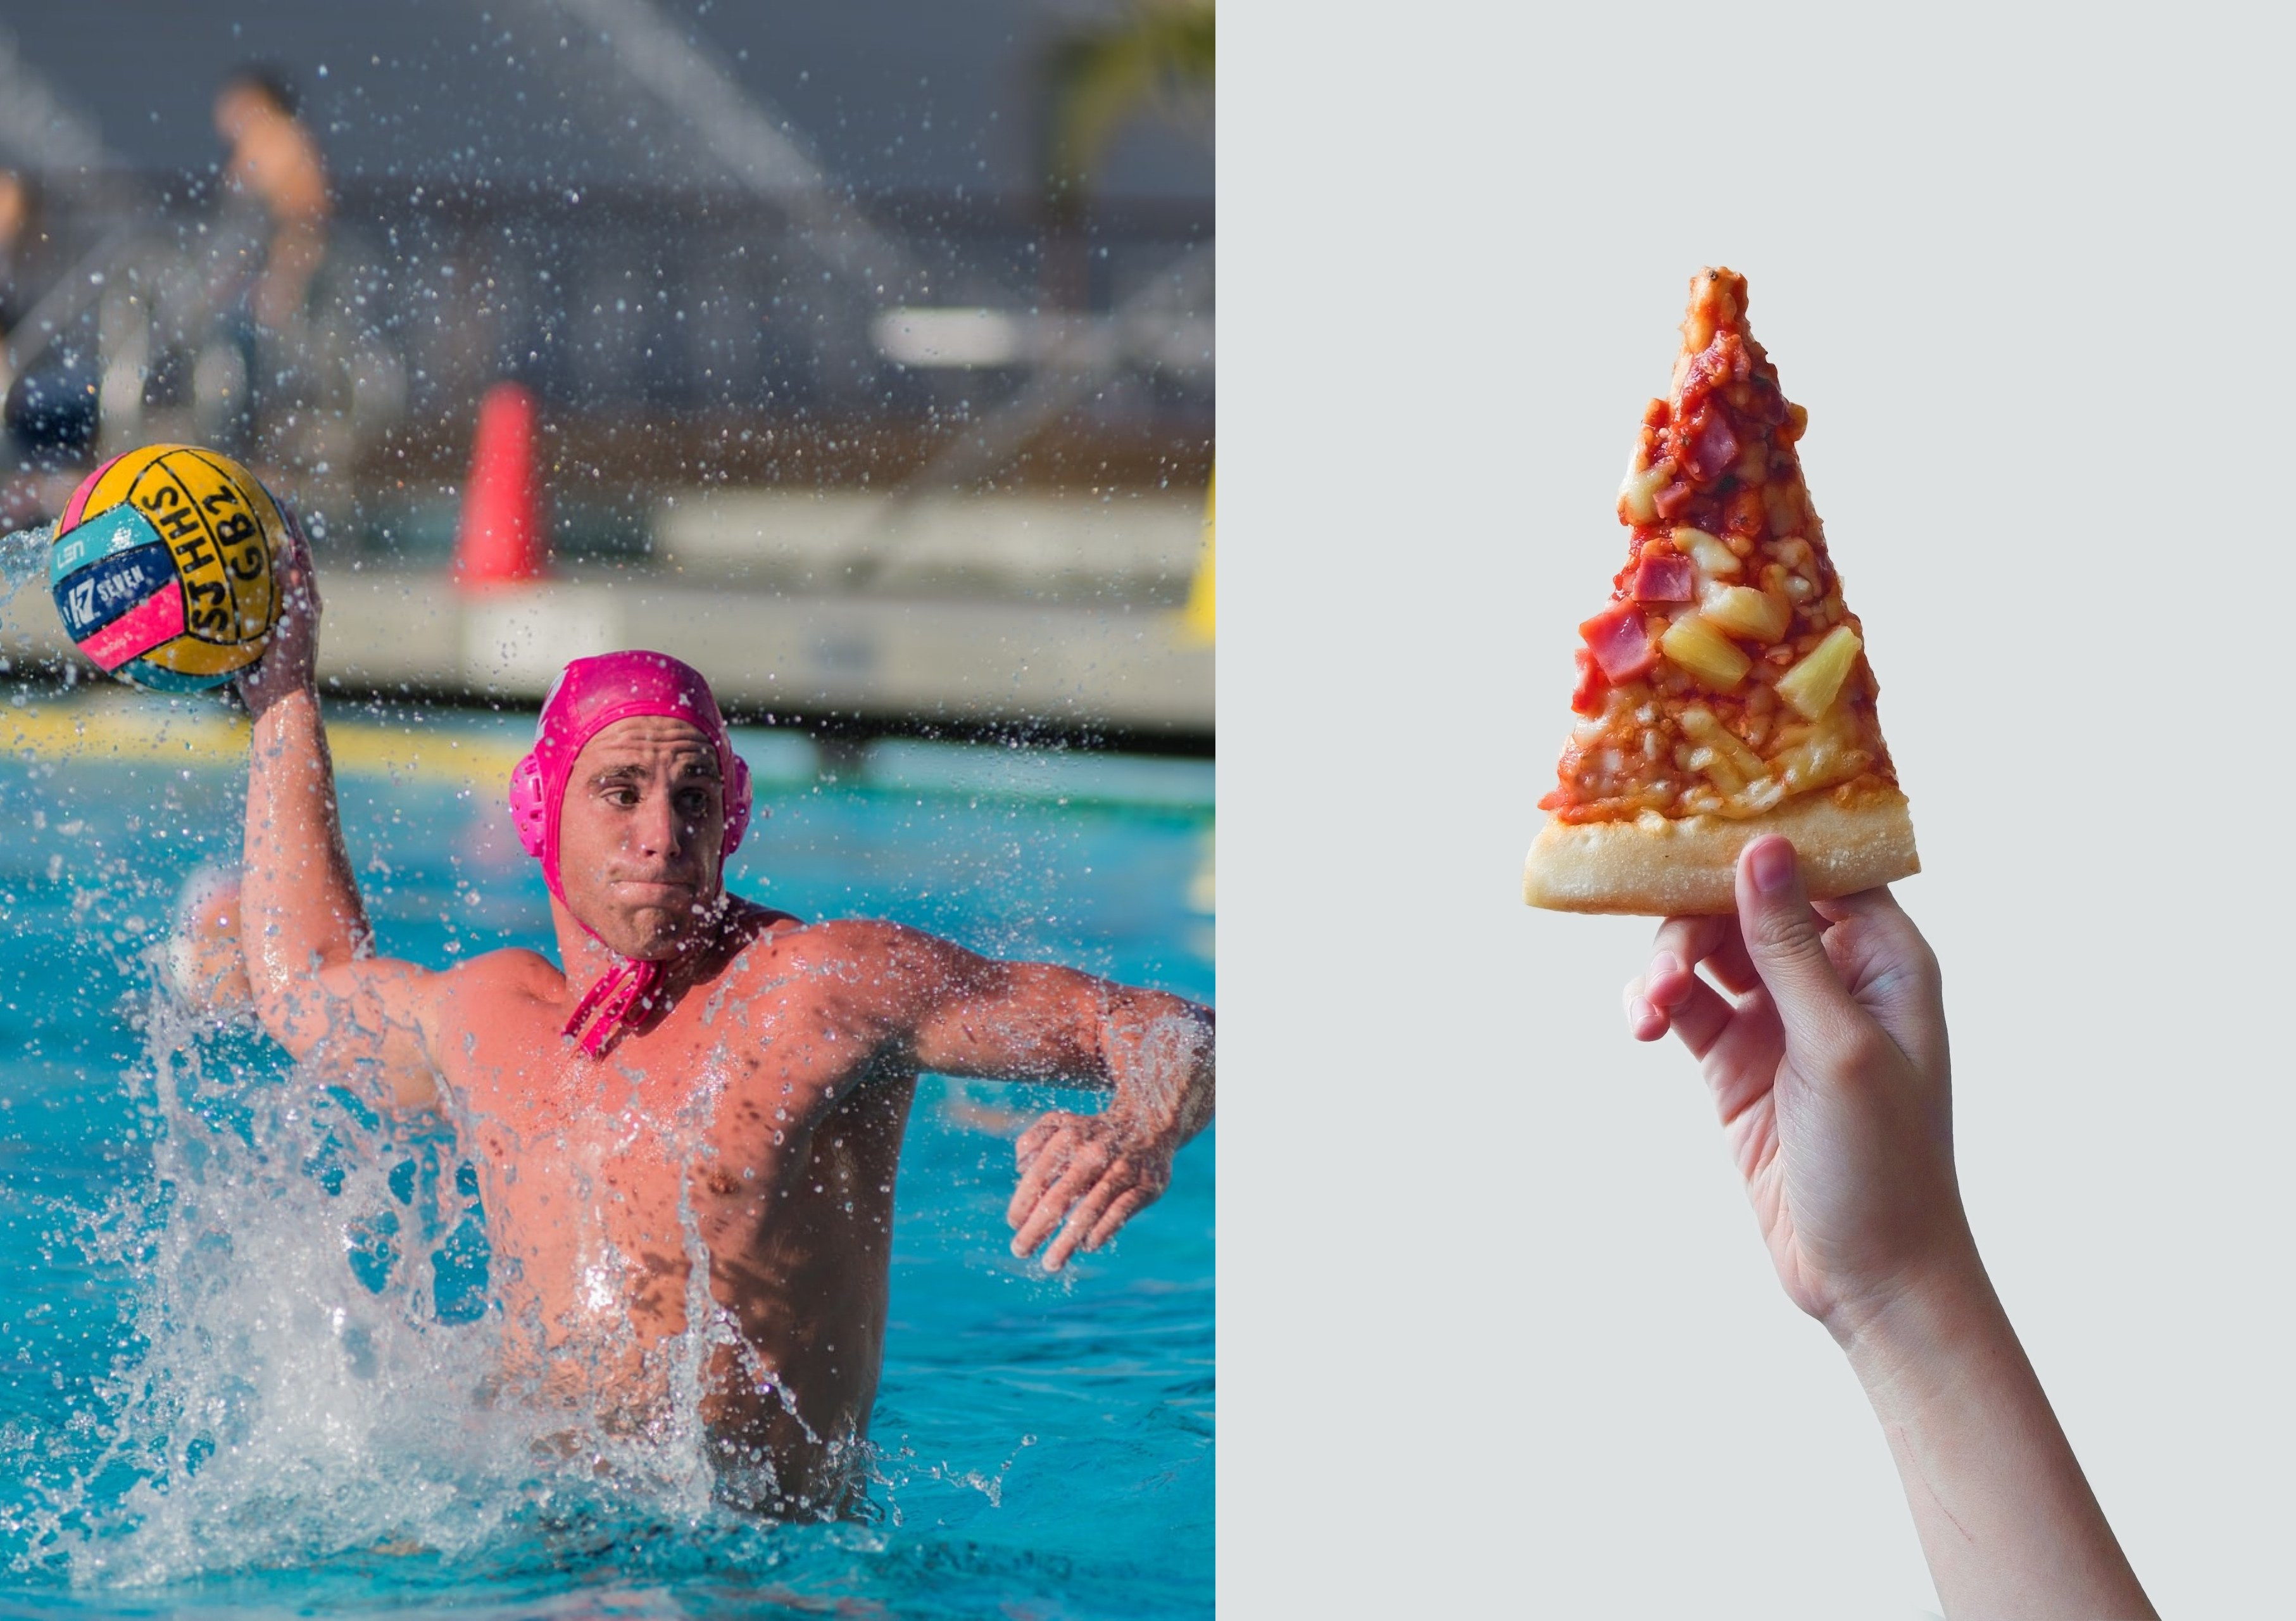 Water polo player in the middle of a game alongside hand holding up slice of hawaiian pizza | Source: Unsplash - Unsplash